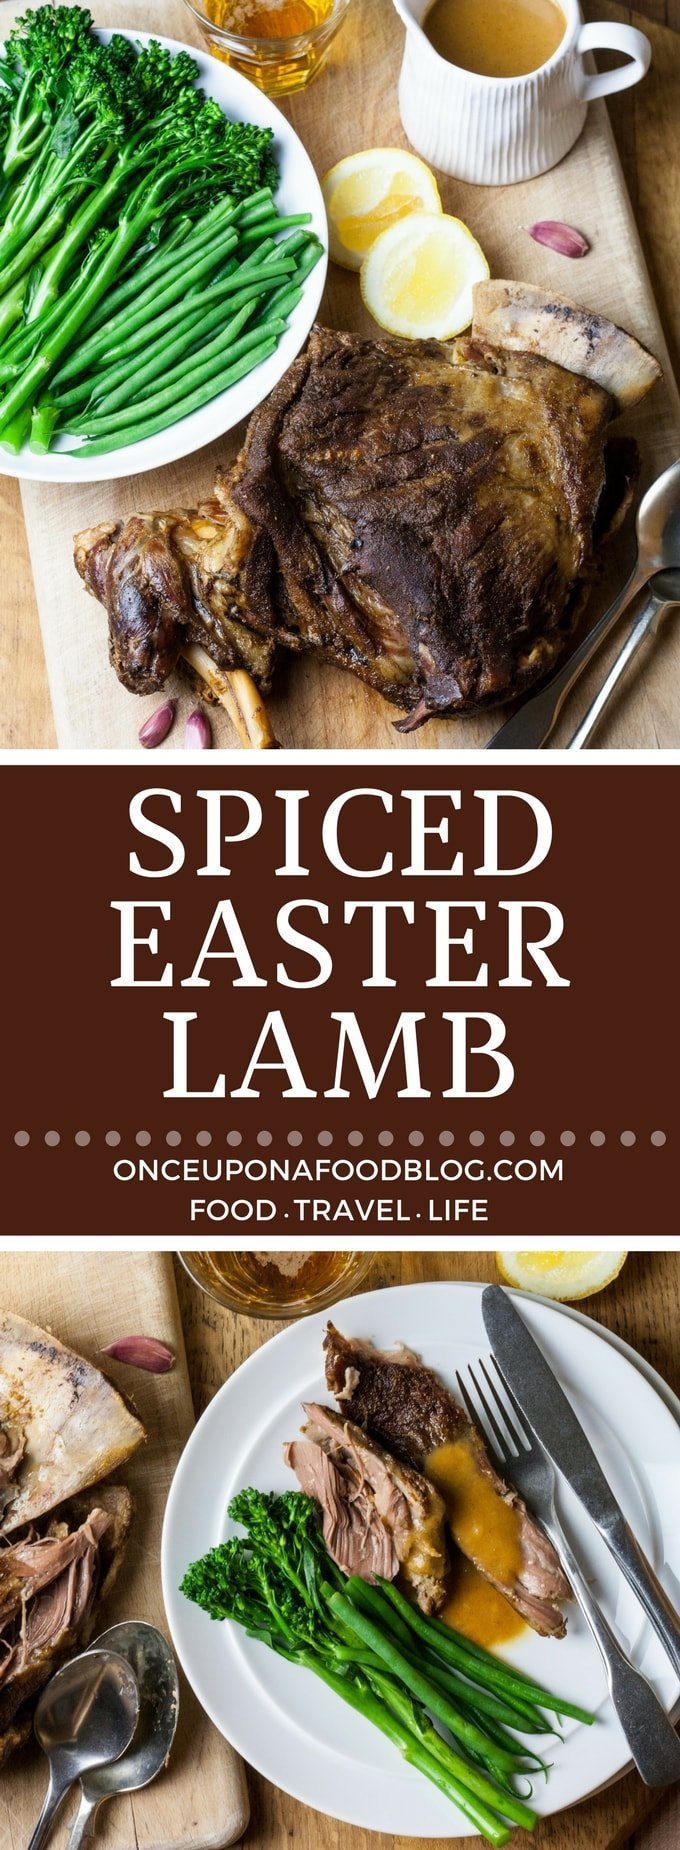 A fantastically easy recipe for a fragrant, full of flavour leg of lamb which even makes its own sauce. Perfect served with fluffy mashed potatoes and steamed veg. #SpicedLamb #Easter #EasterLamb #Recipe